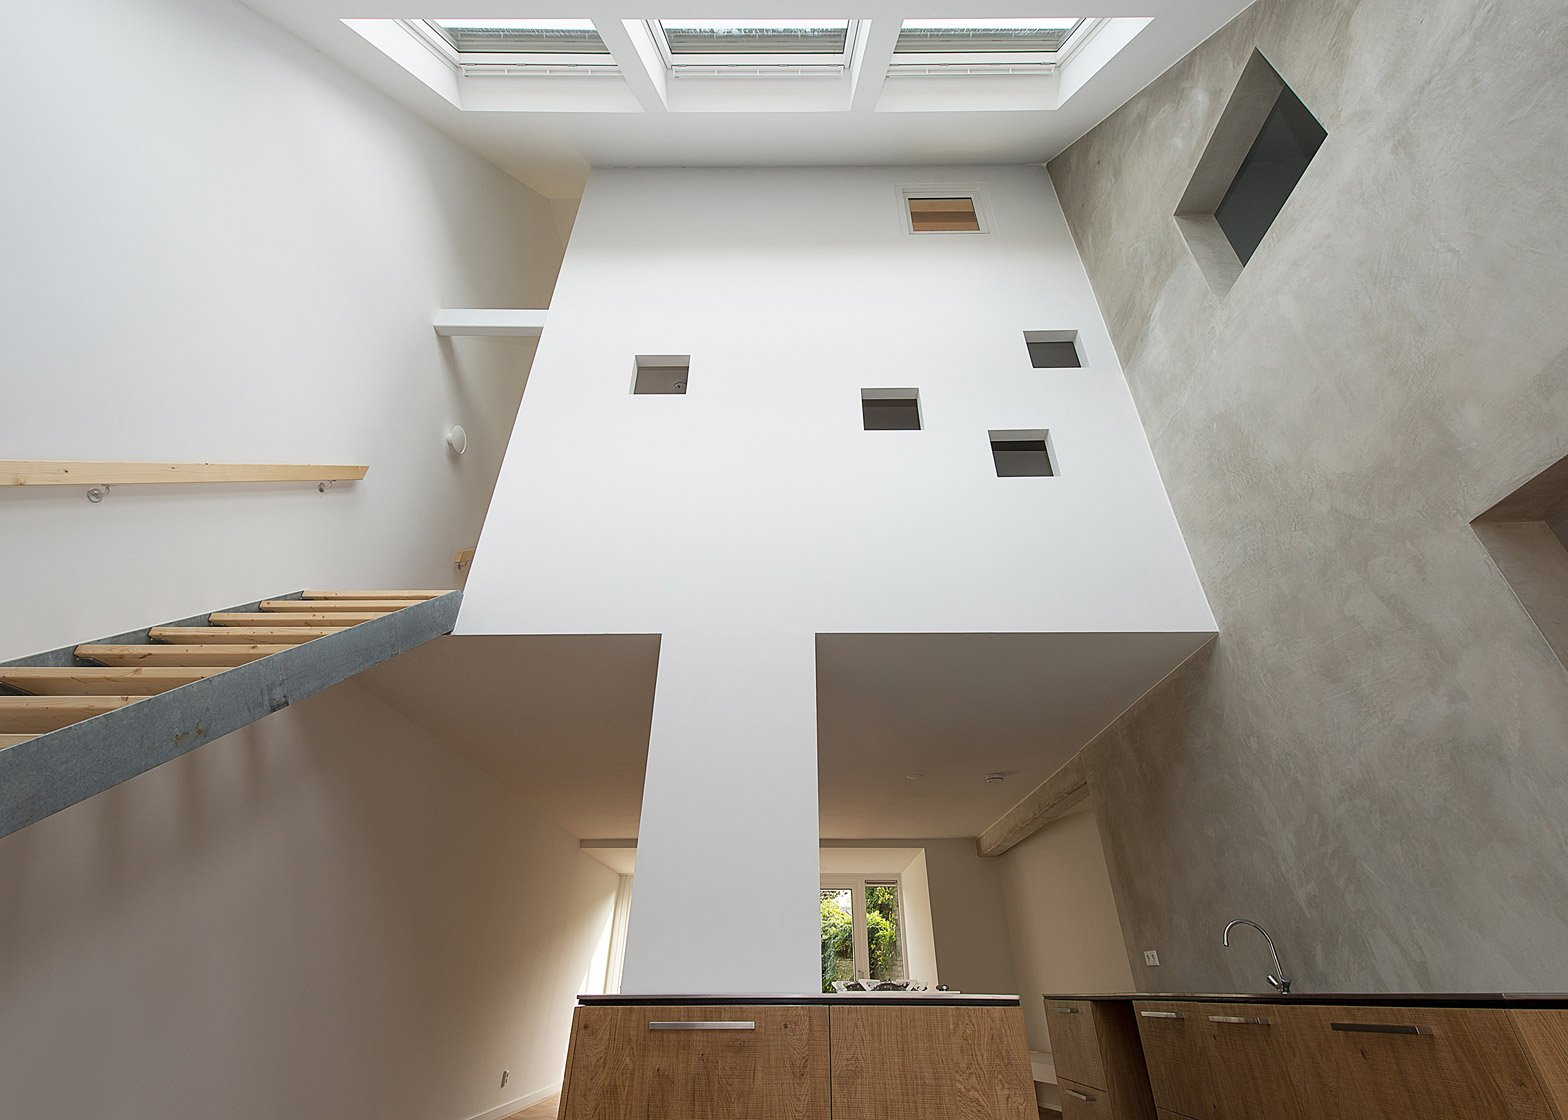 House in a House by Global Architects photographed by Mirko Merchiori